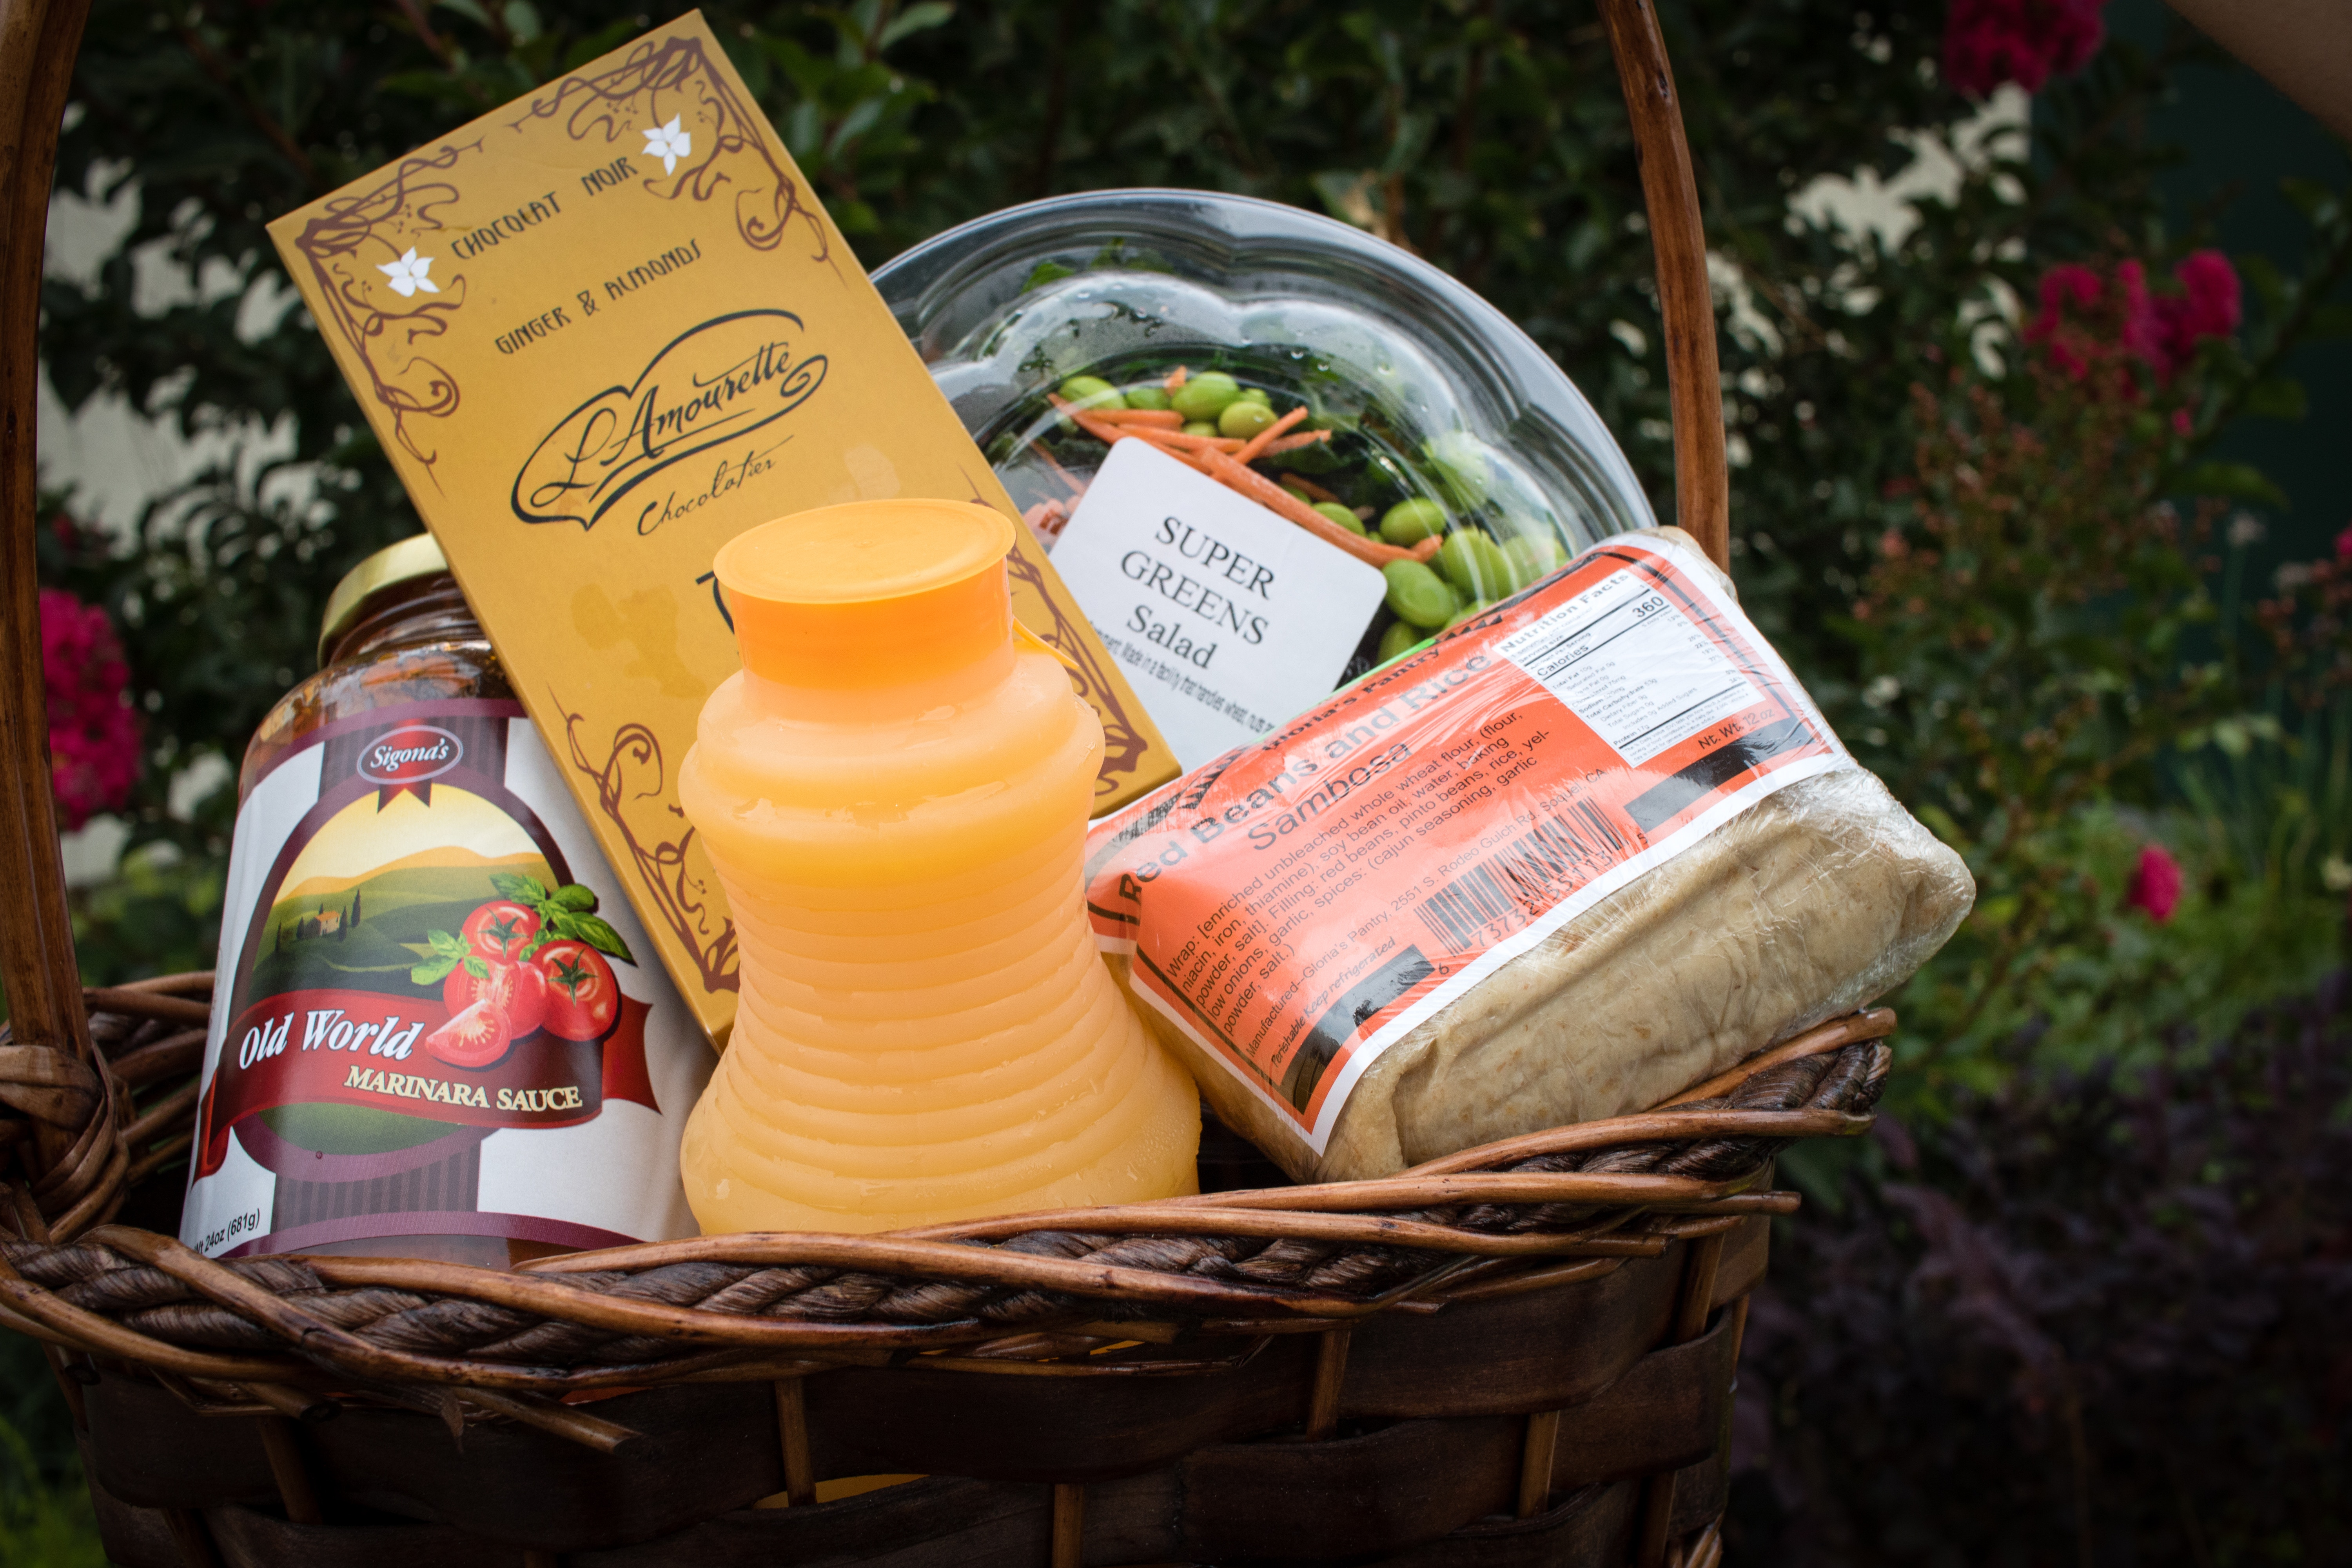 competition prize basket